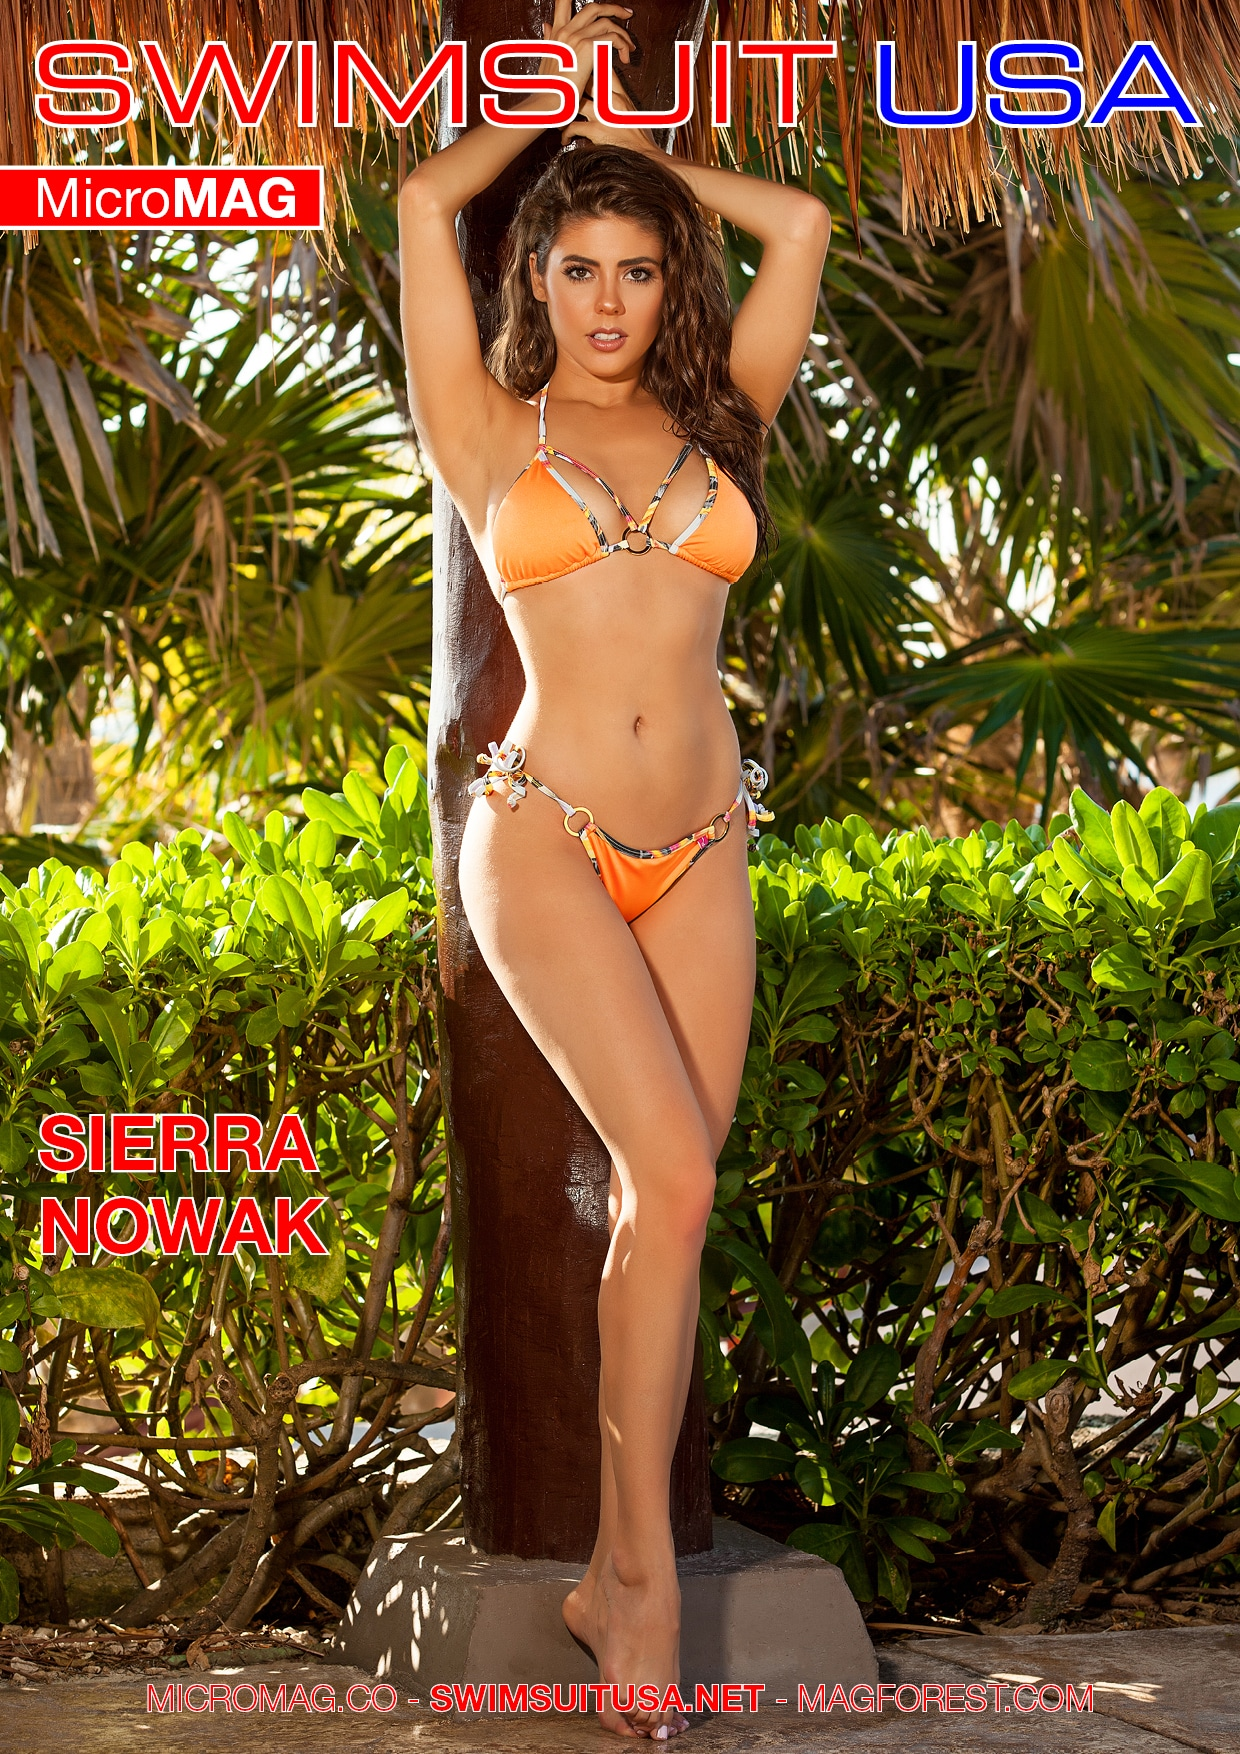 Swimsuit USA MicroMAG - Sierra Nowak - Issue 6 2